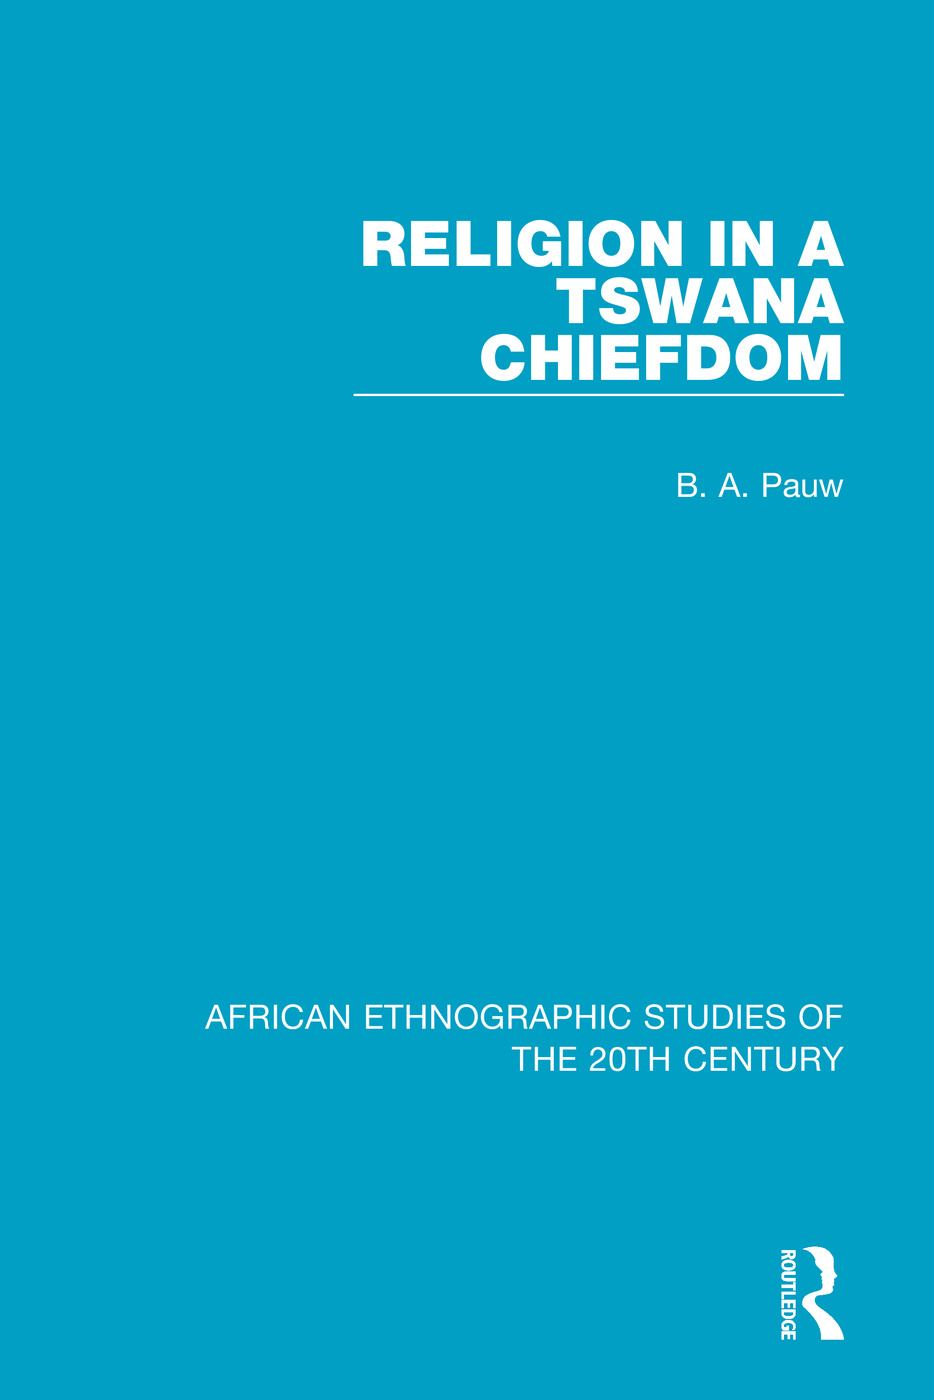 Religion in a Tswana Chiefdom book cover